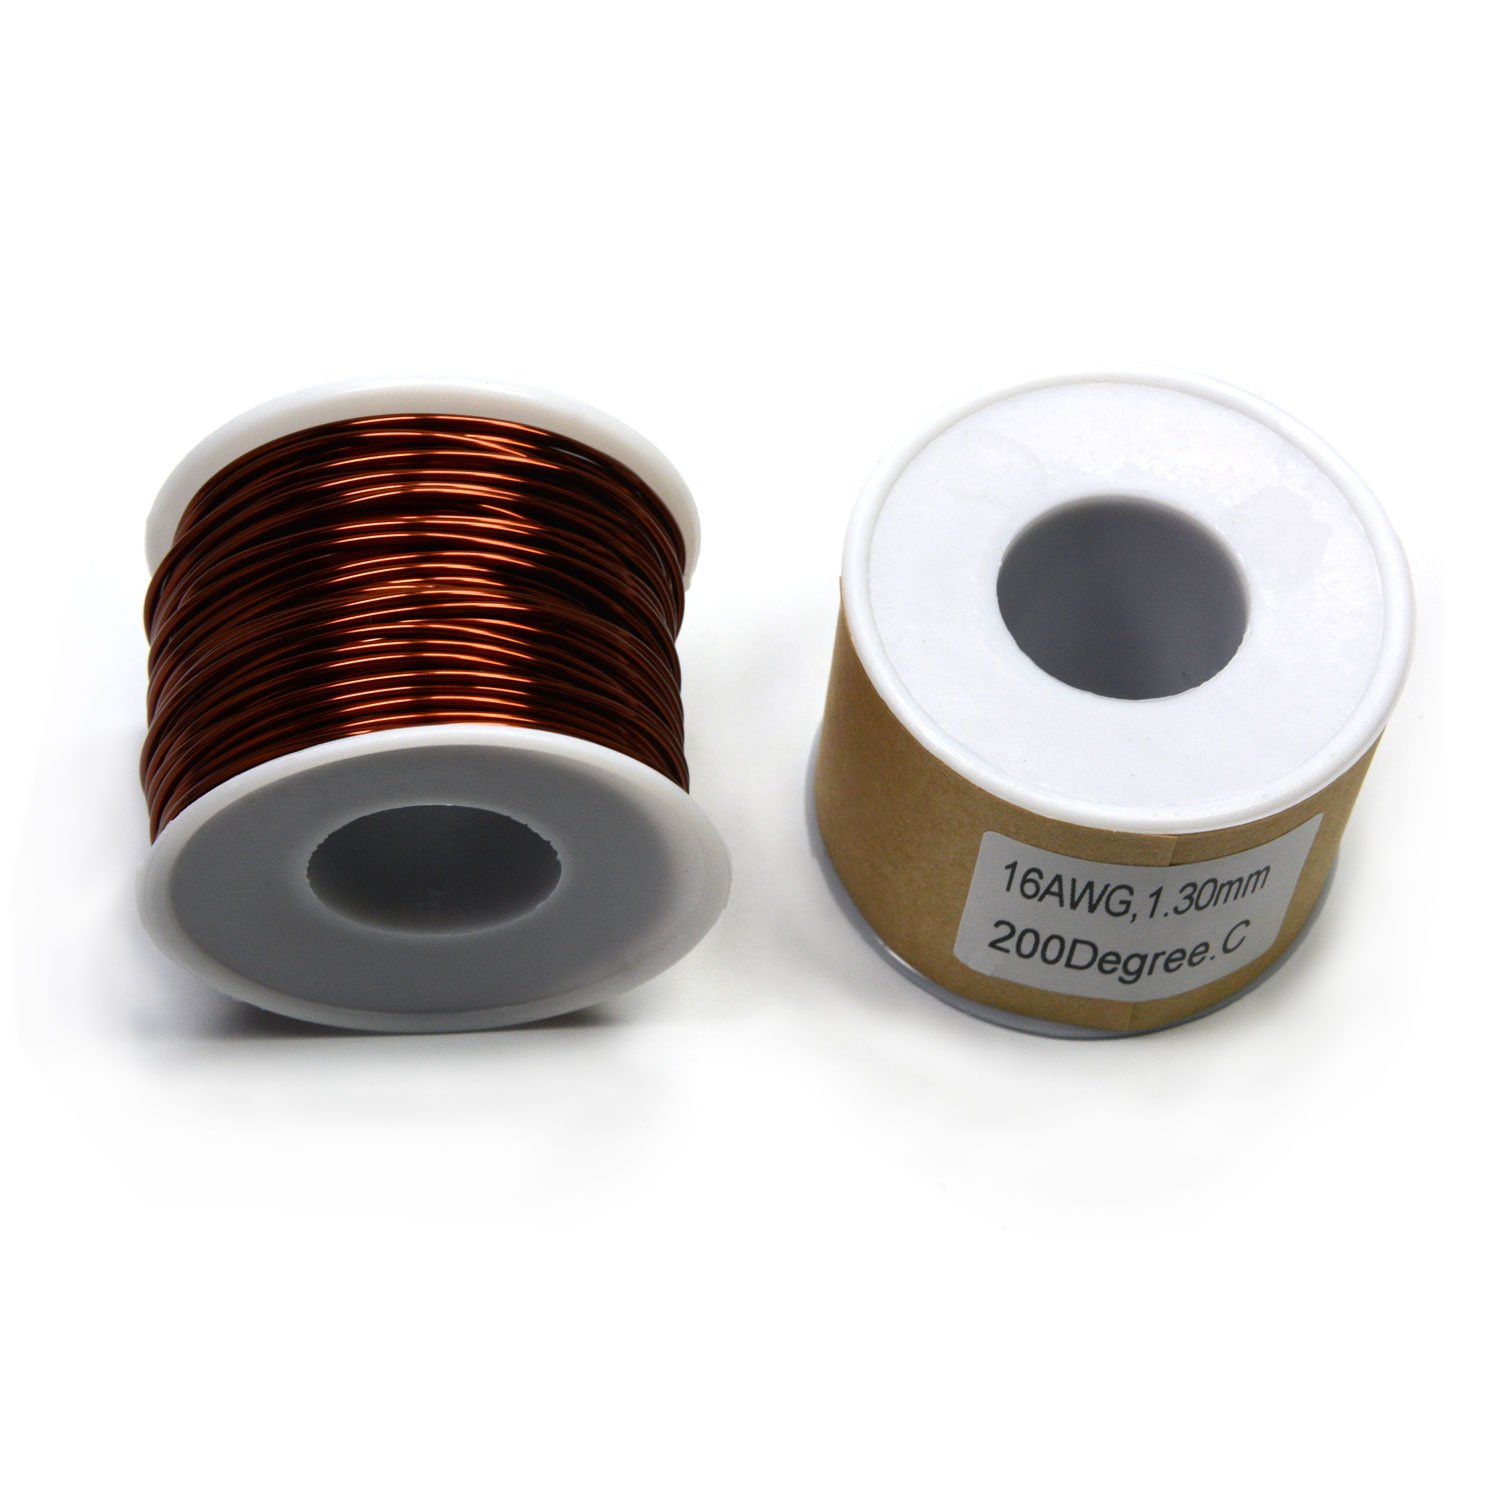 CMS Magnetics Magnet Wire Enameled 16 Gauge One LB Spool